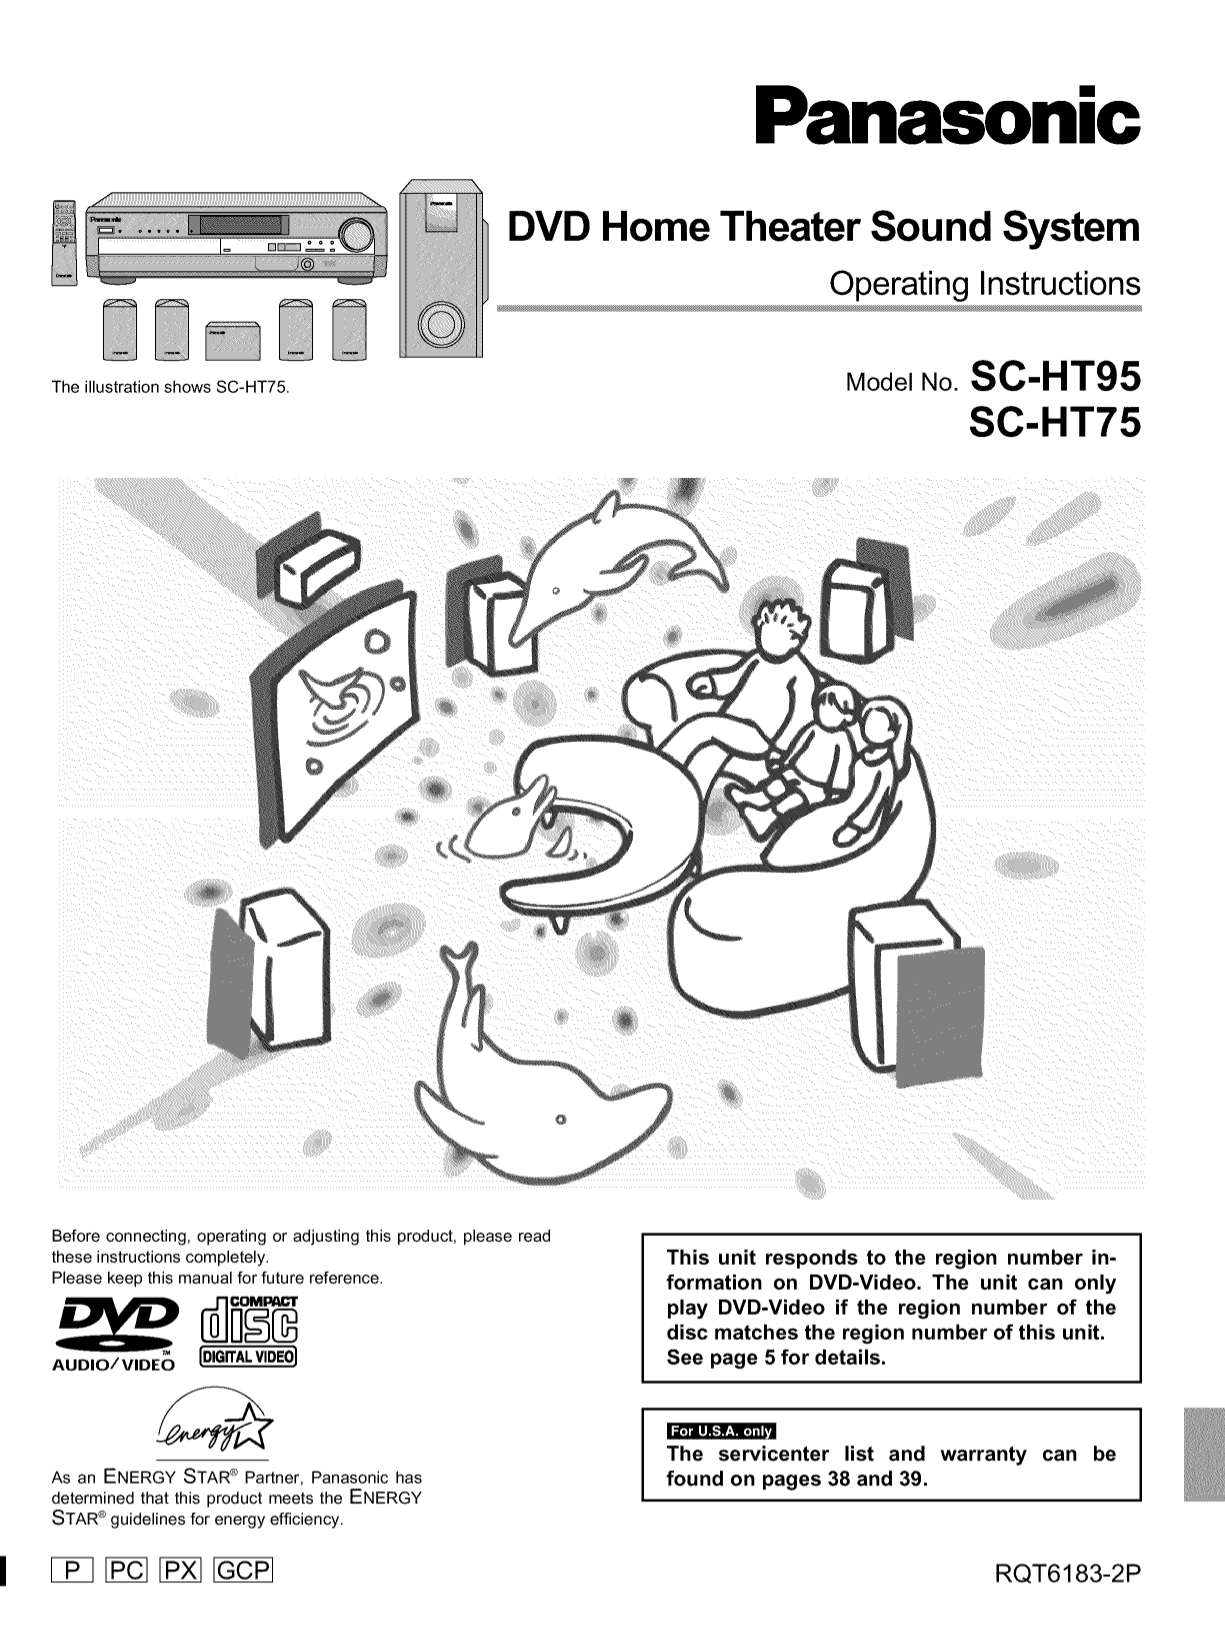 Download free pdf for Panasonic SC-HT75 Home Theater manual